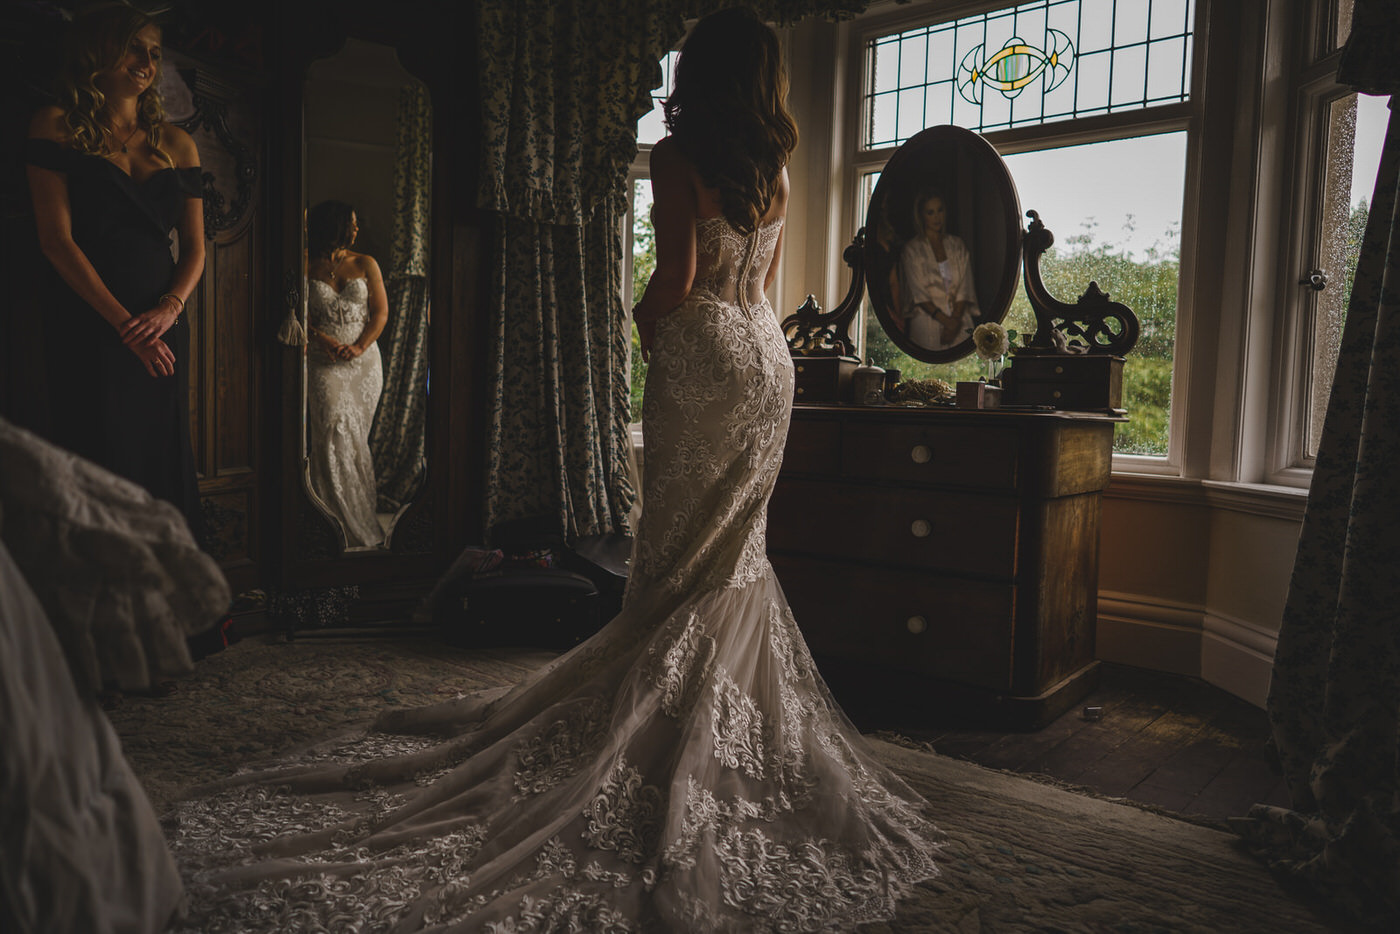 the beautiful bride in her stunning dress showing off the incredible detail